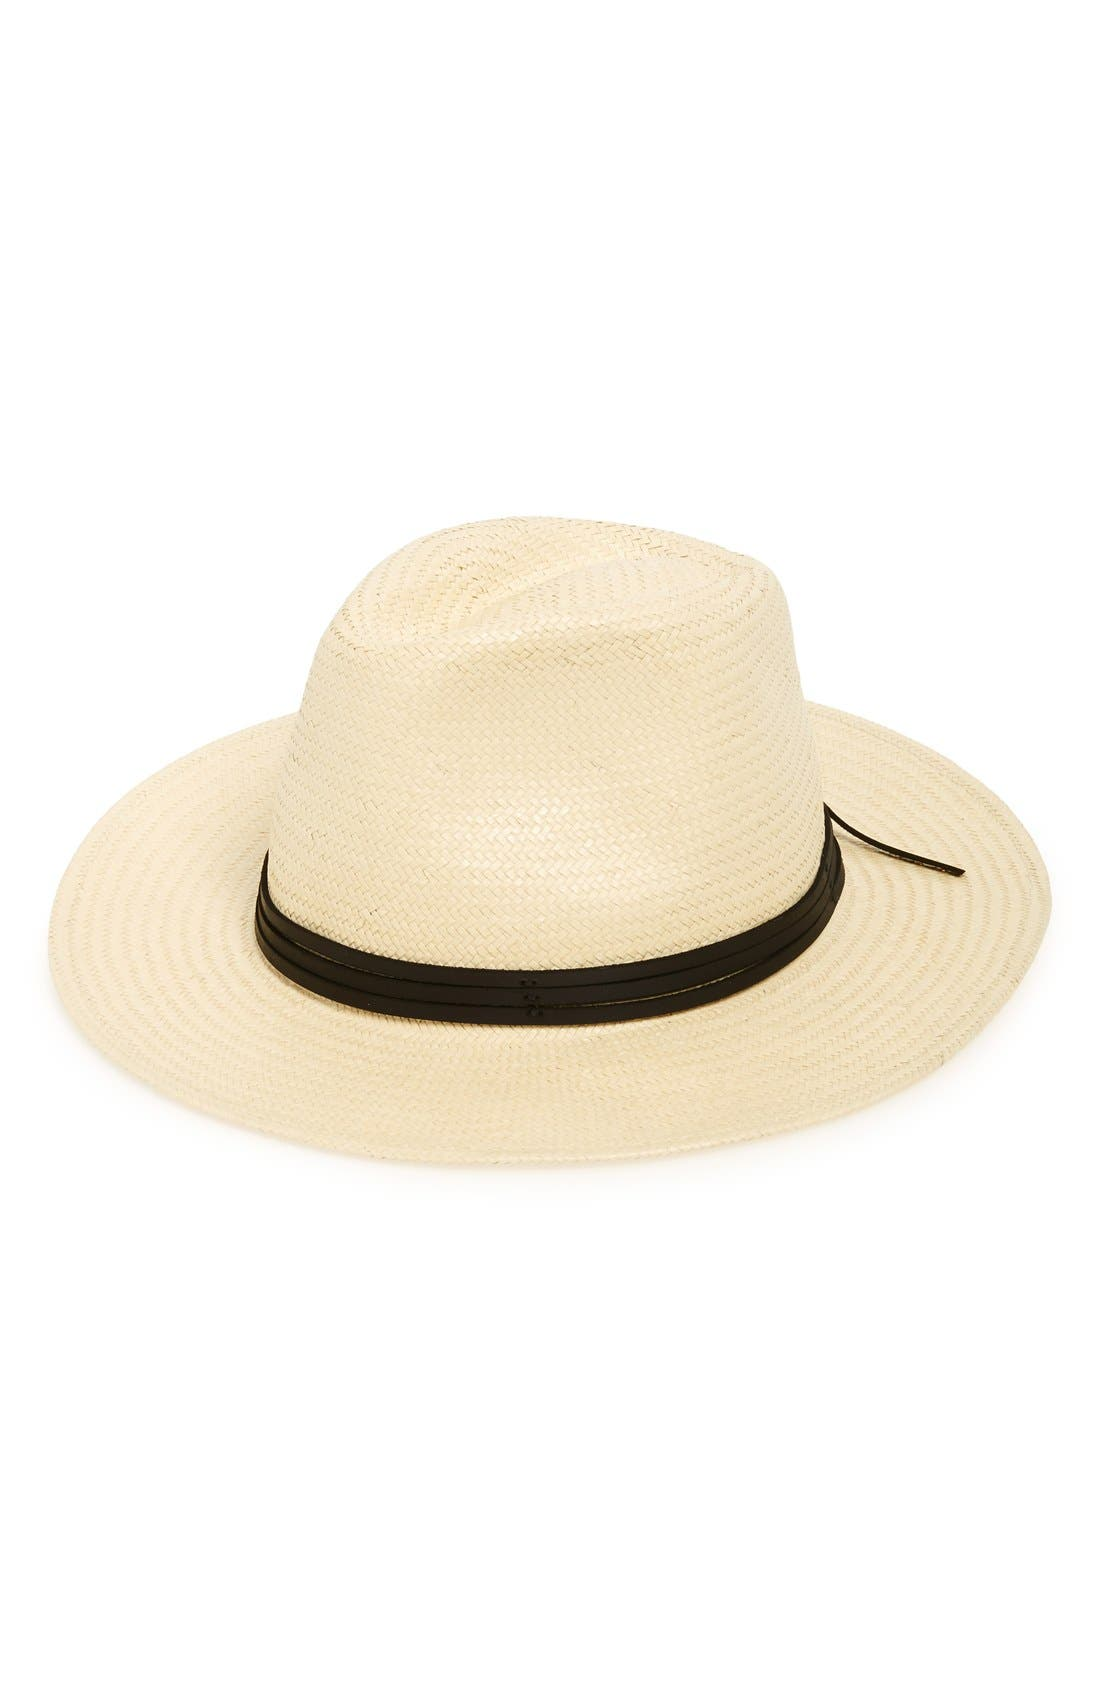 'Pacific' Straw Fedora,                             Main thumbnail 1, color,                             Beige